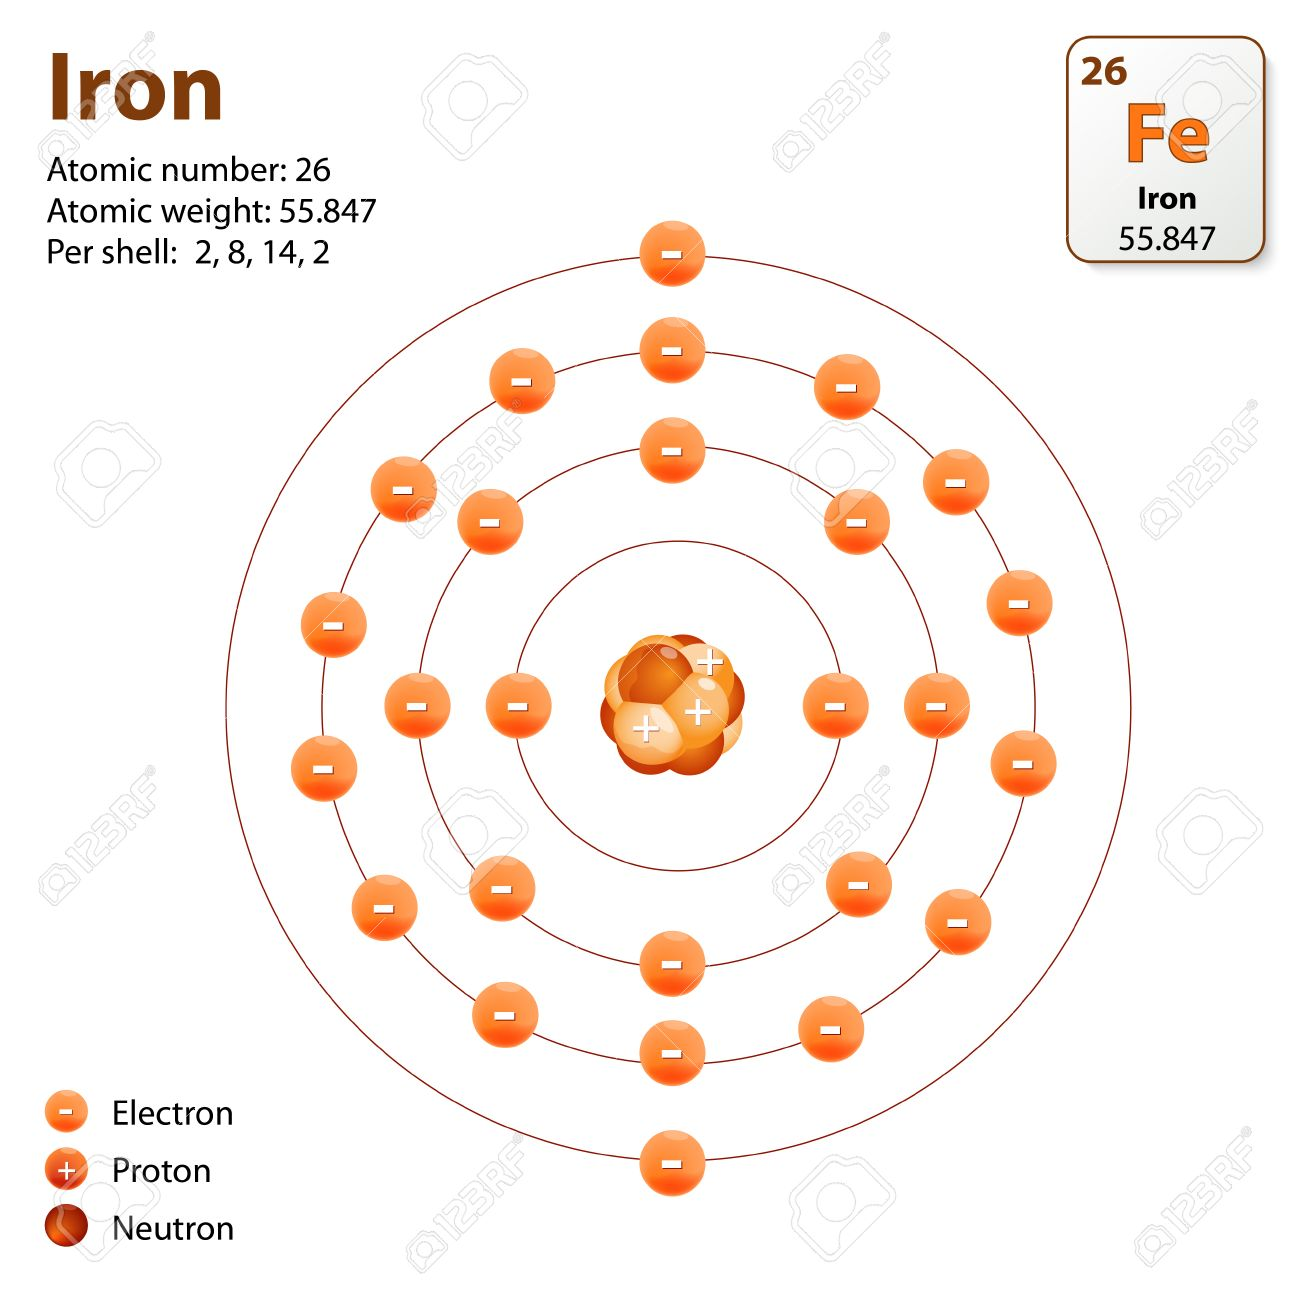 Atom iron this diagram shows the electron shell configuration this diagram shows the electron shell configuration for the iron atom stock vector pooptronica Images